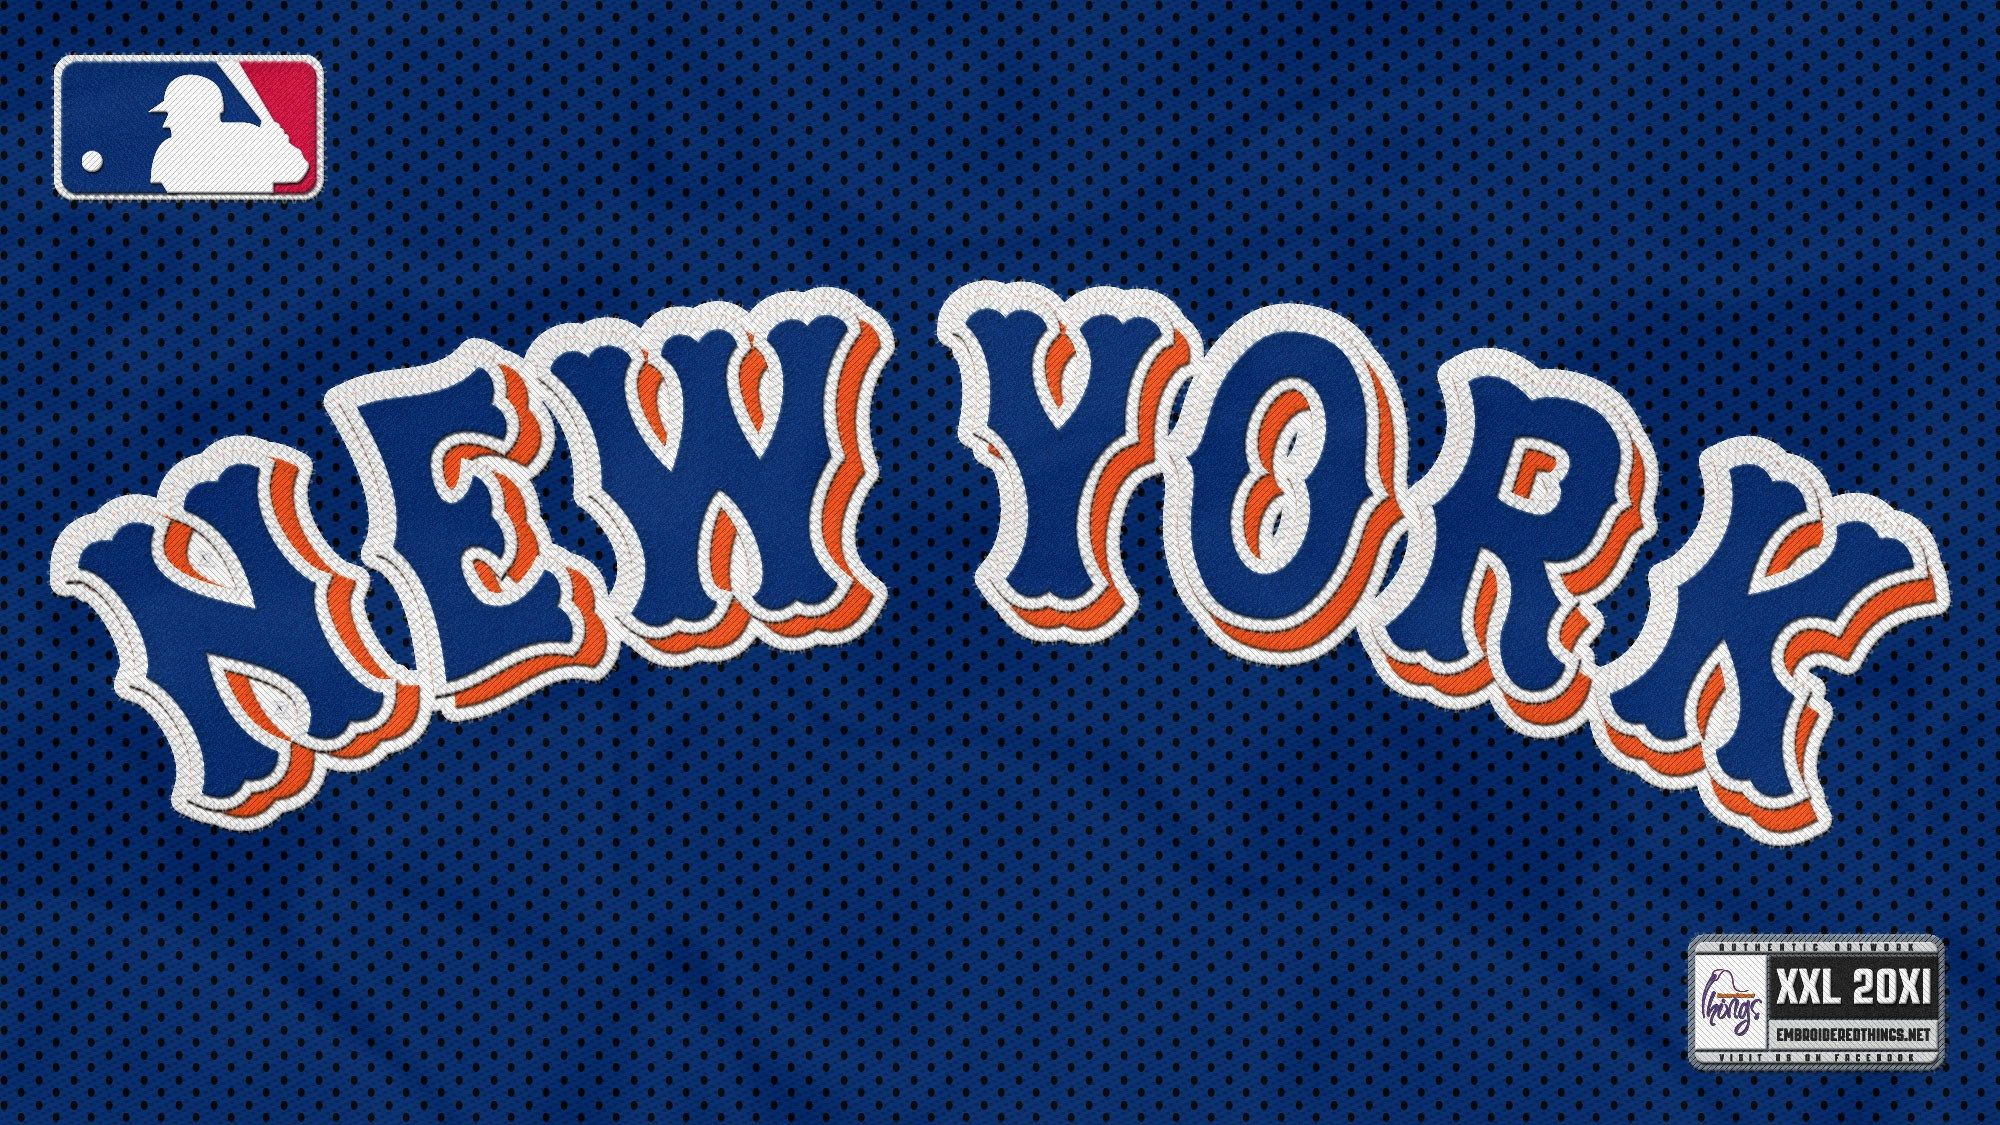 Mets Desktop Wallpapers New York Mets Sports Wallpapers New York Mets Baseball